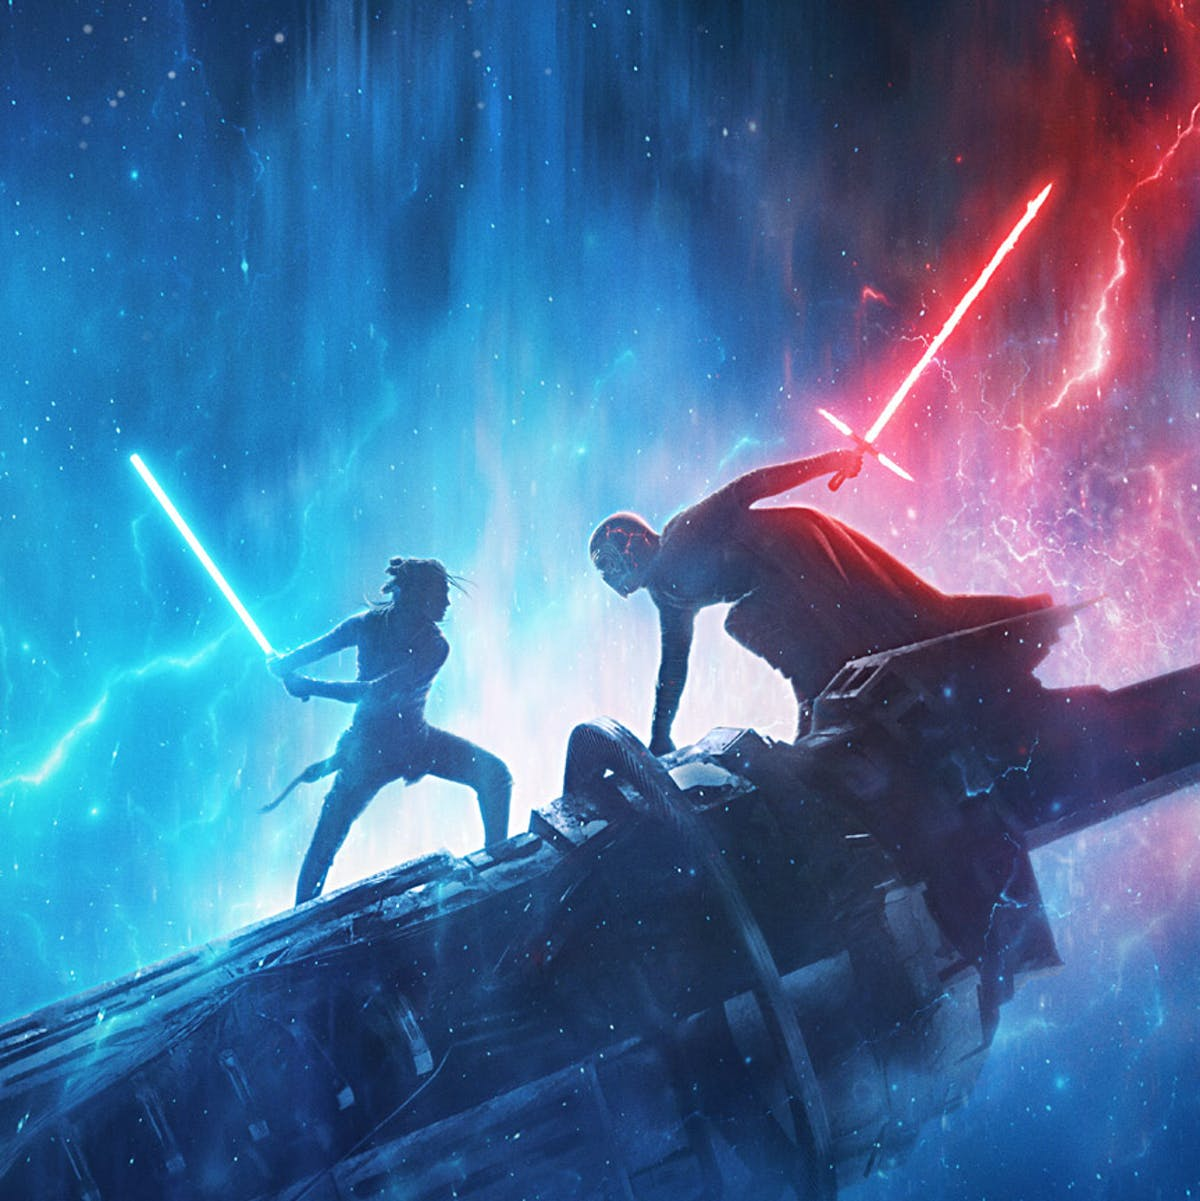 'Rise of Skywalker' Leaks May Confirm World Between Worlds and Time Travel